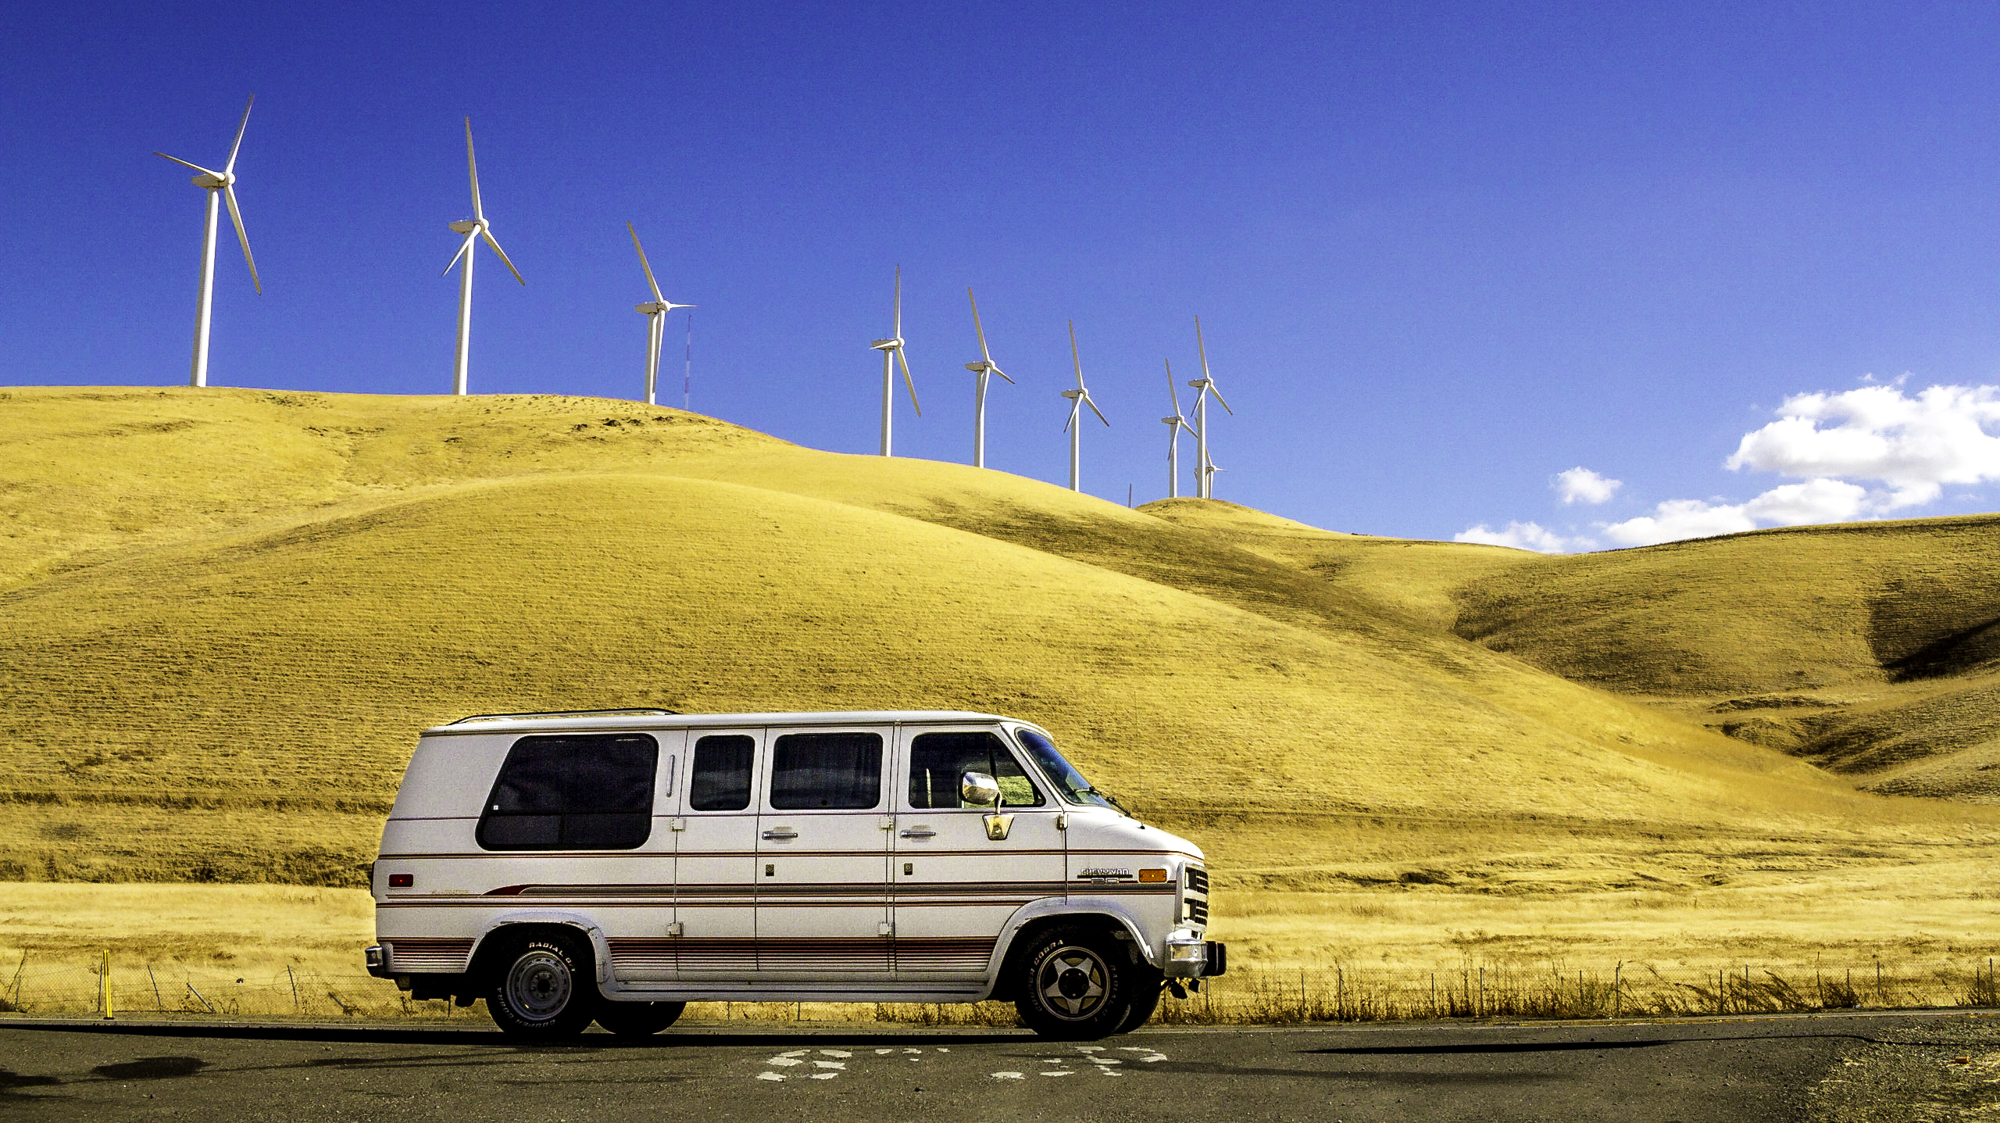 Van with wind turbines